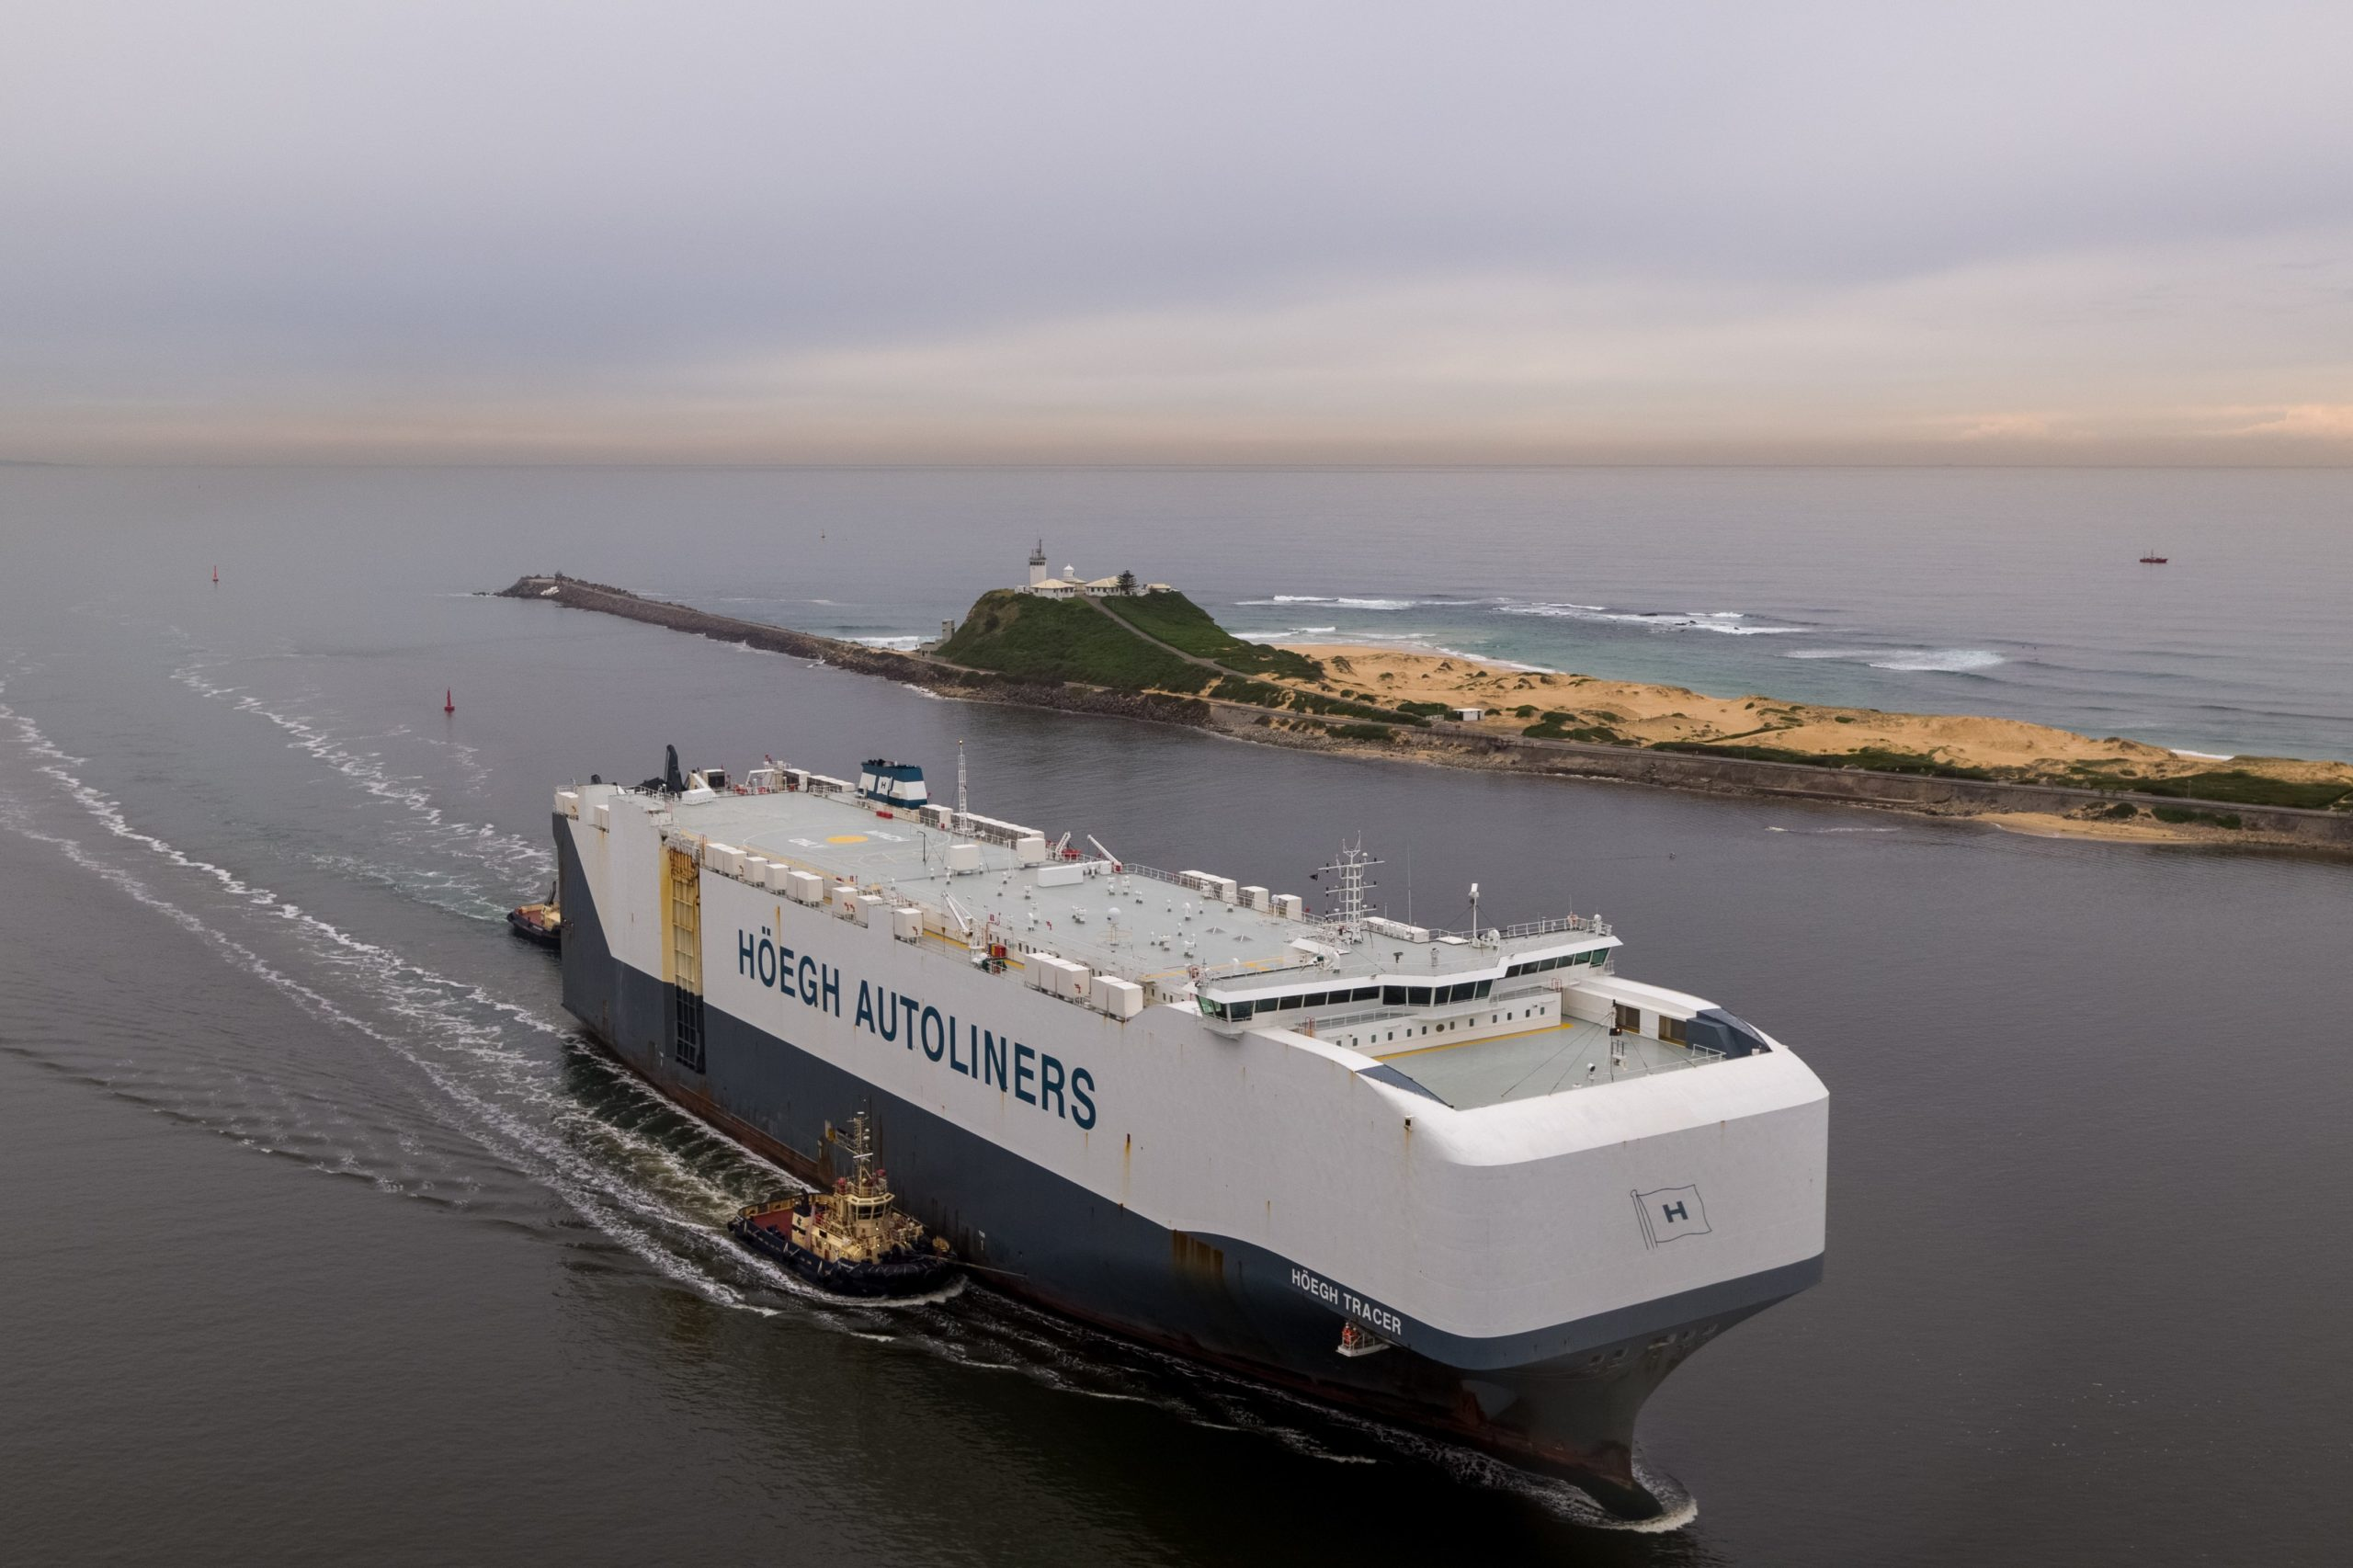 A New Horizon of trade opportunities set for Port of Newcastle